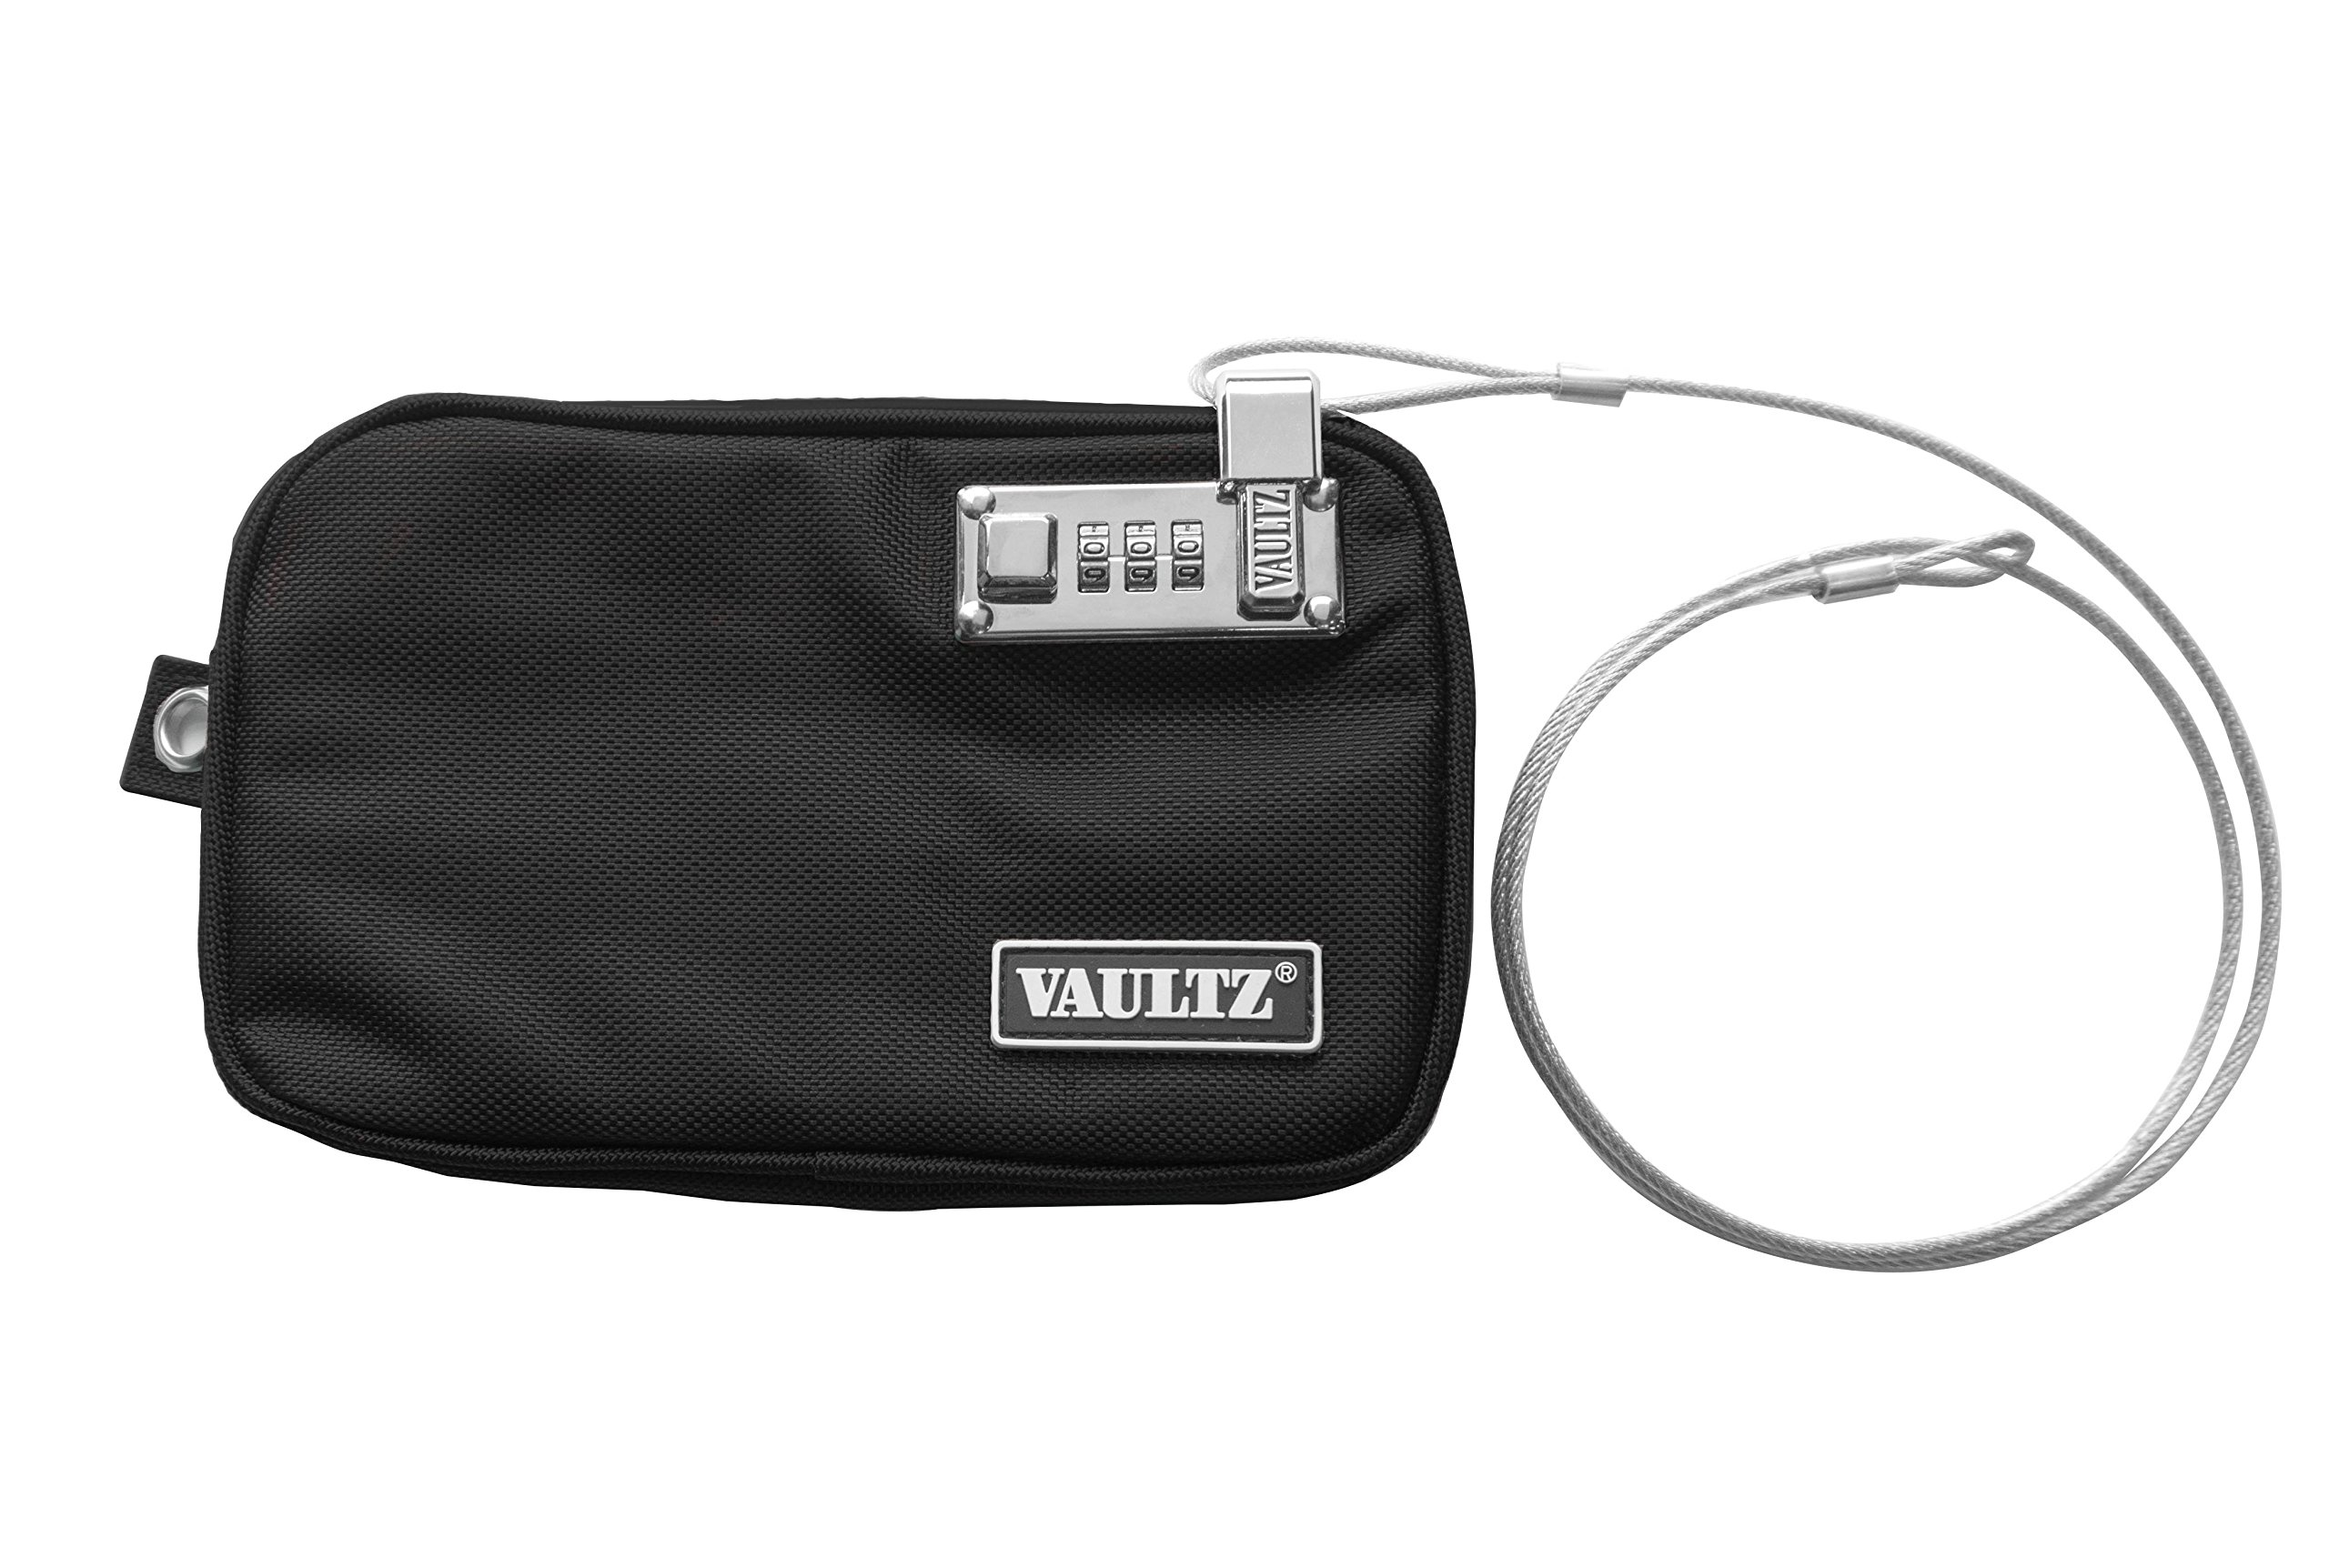 Vaultz Locking Field Gear Pouch with Tether, Small, 5 x 8 Inches, Black (VZ00739)